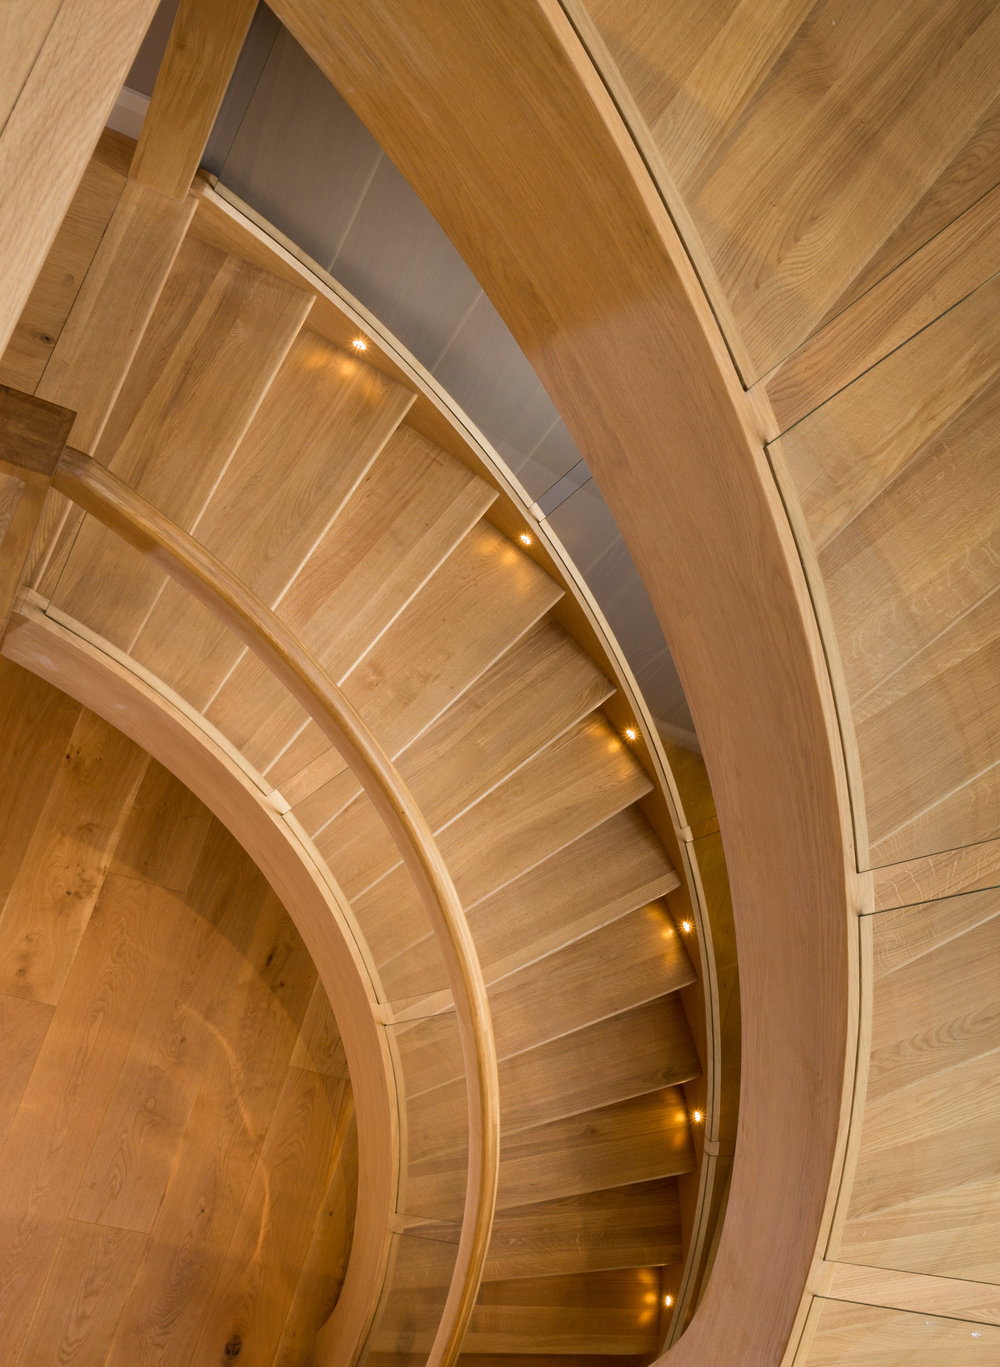 A view down the elegant wooden staircase that sits in proudly in the centre of the home.